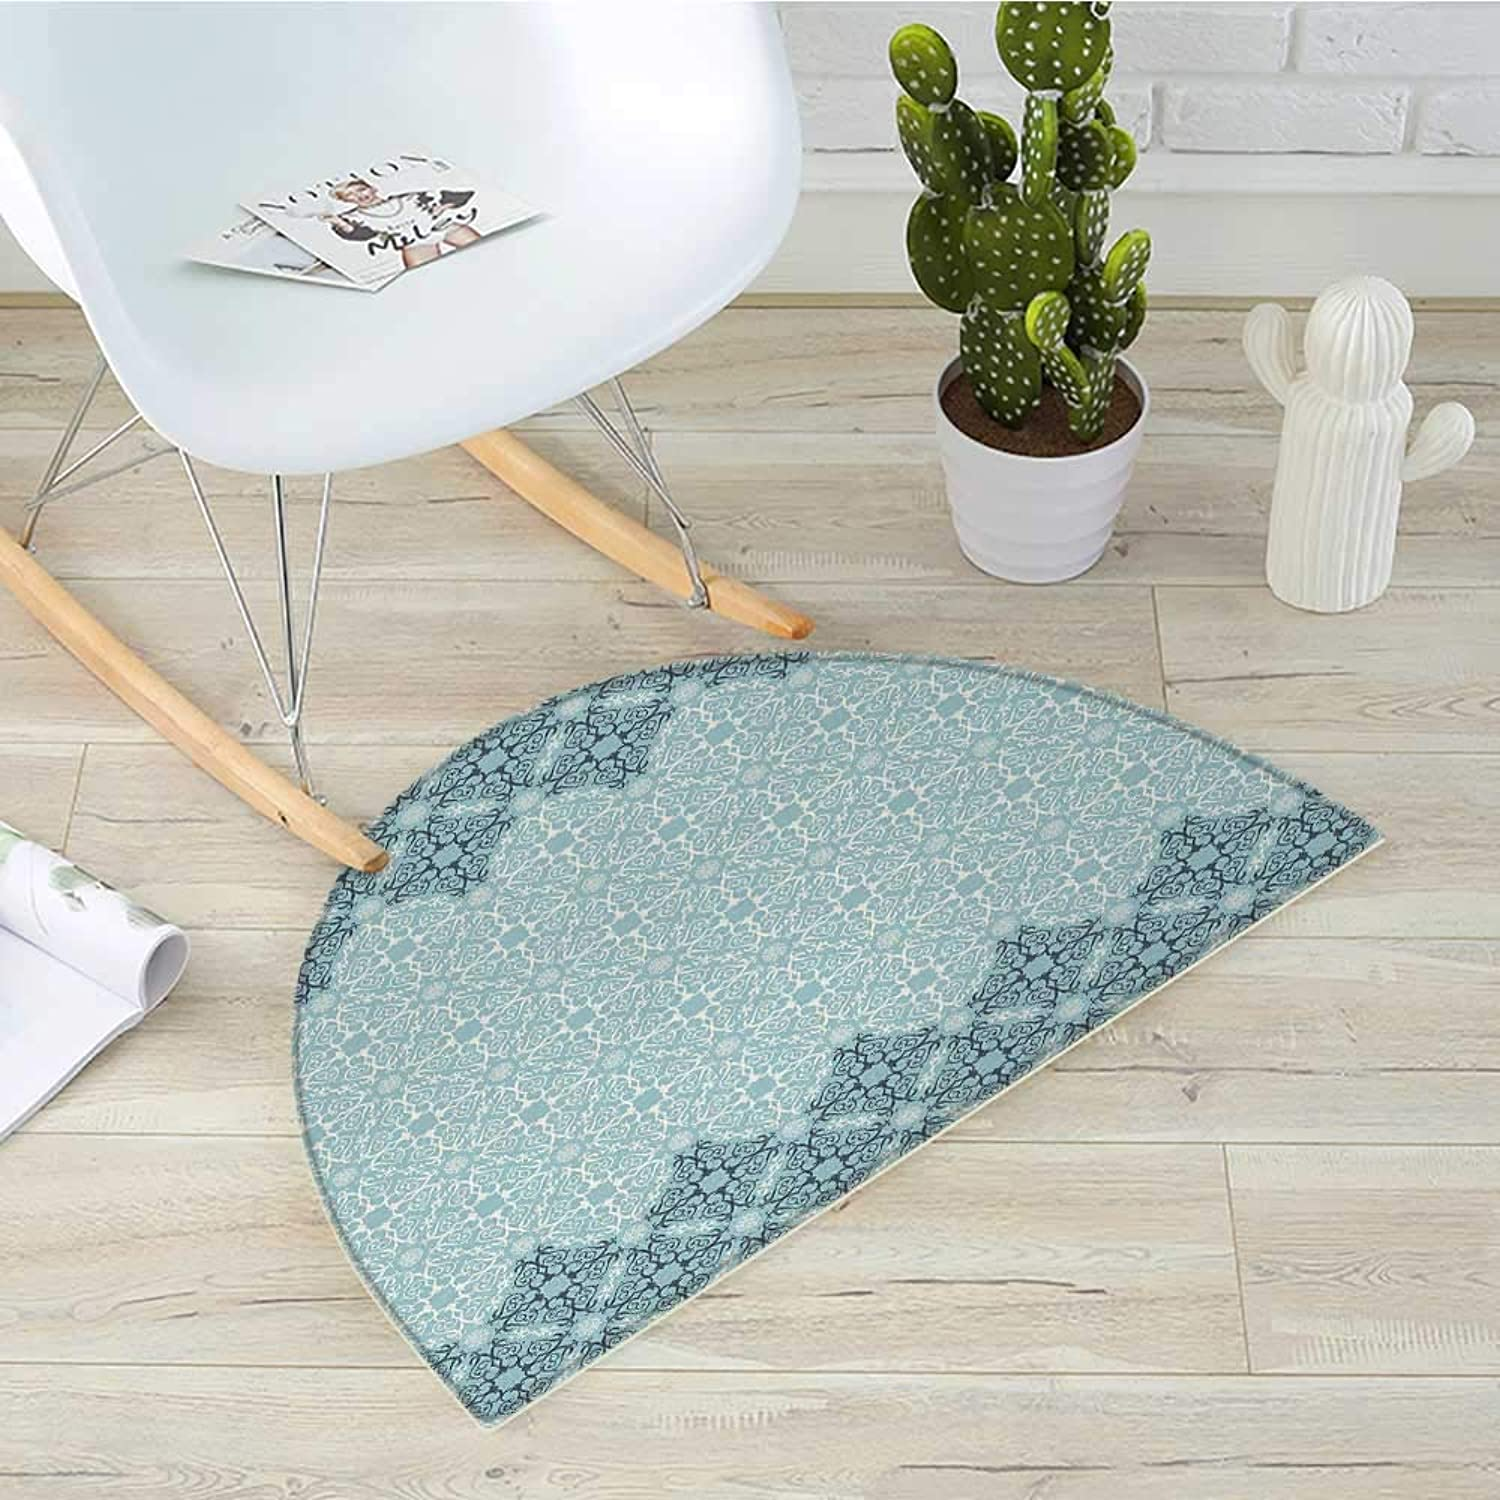 Morrocan Semicircle Doormat Modern Design with Eastern Ethnic Style Forms Ivy Frame Like in Two Halfmoon doormats H 43.3  xD 64.9  Seafoam